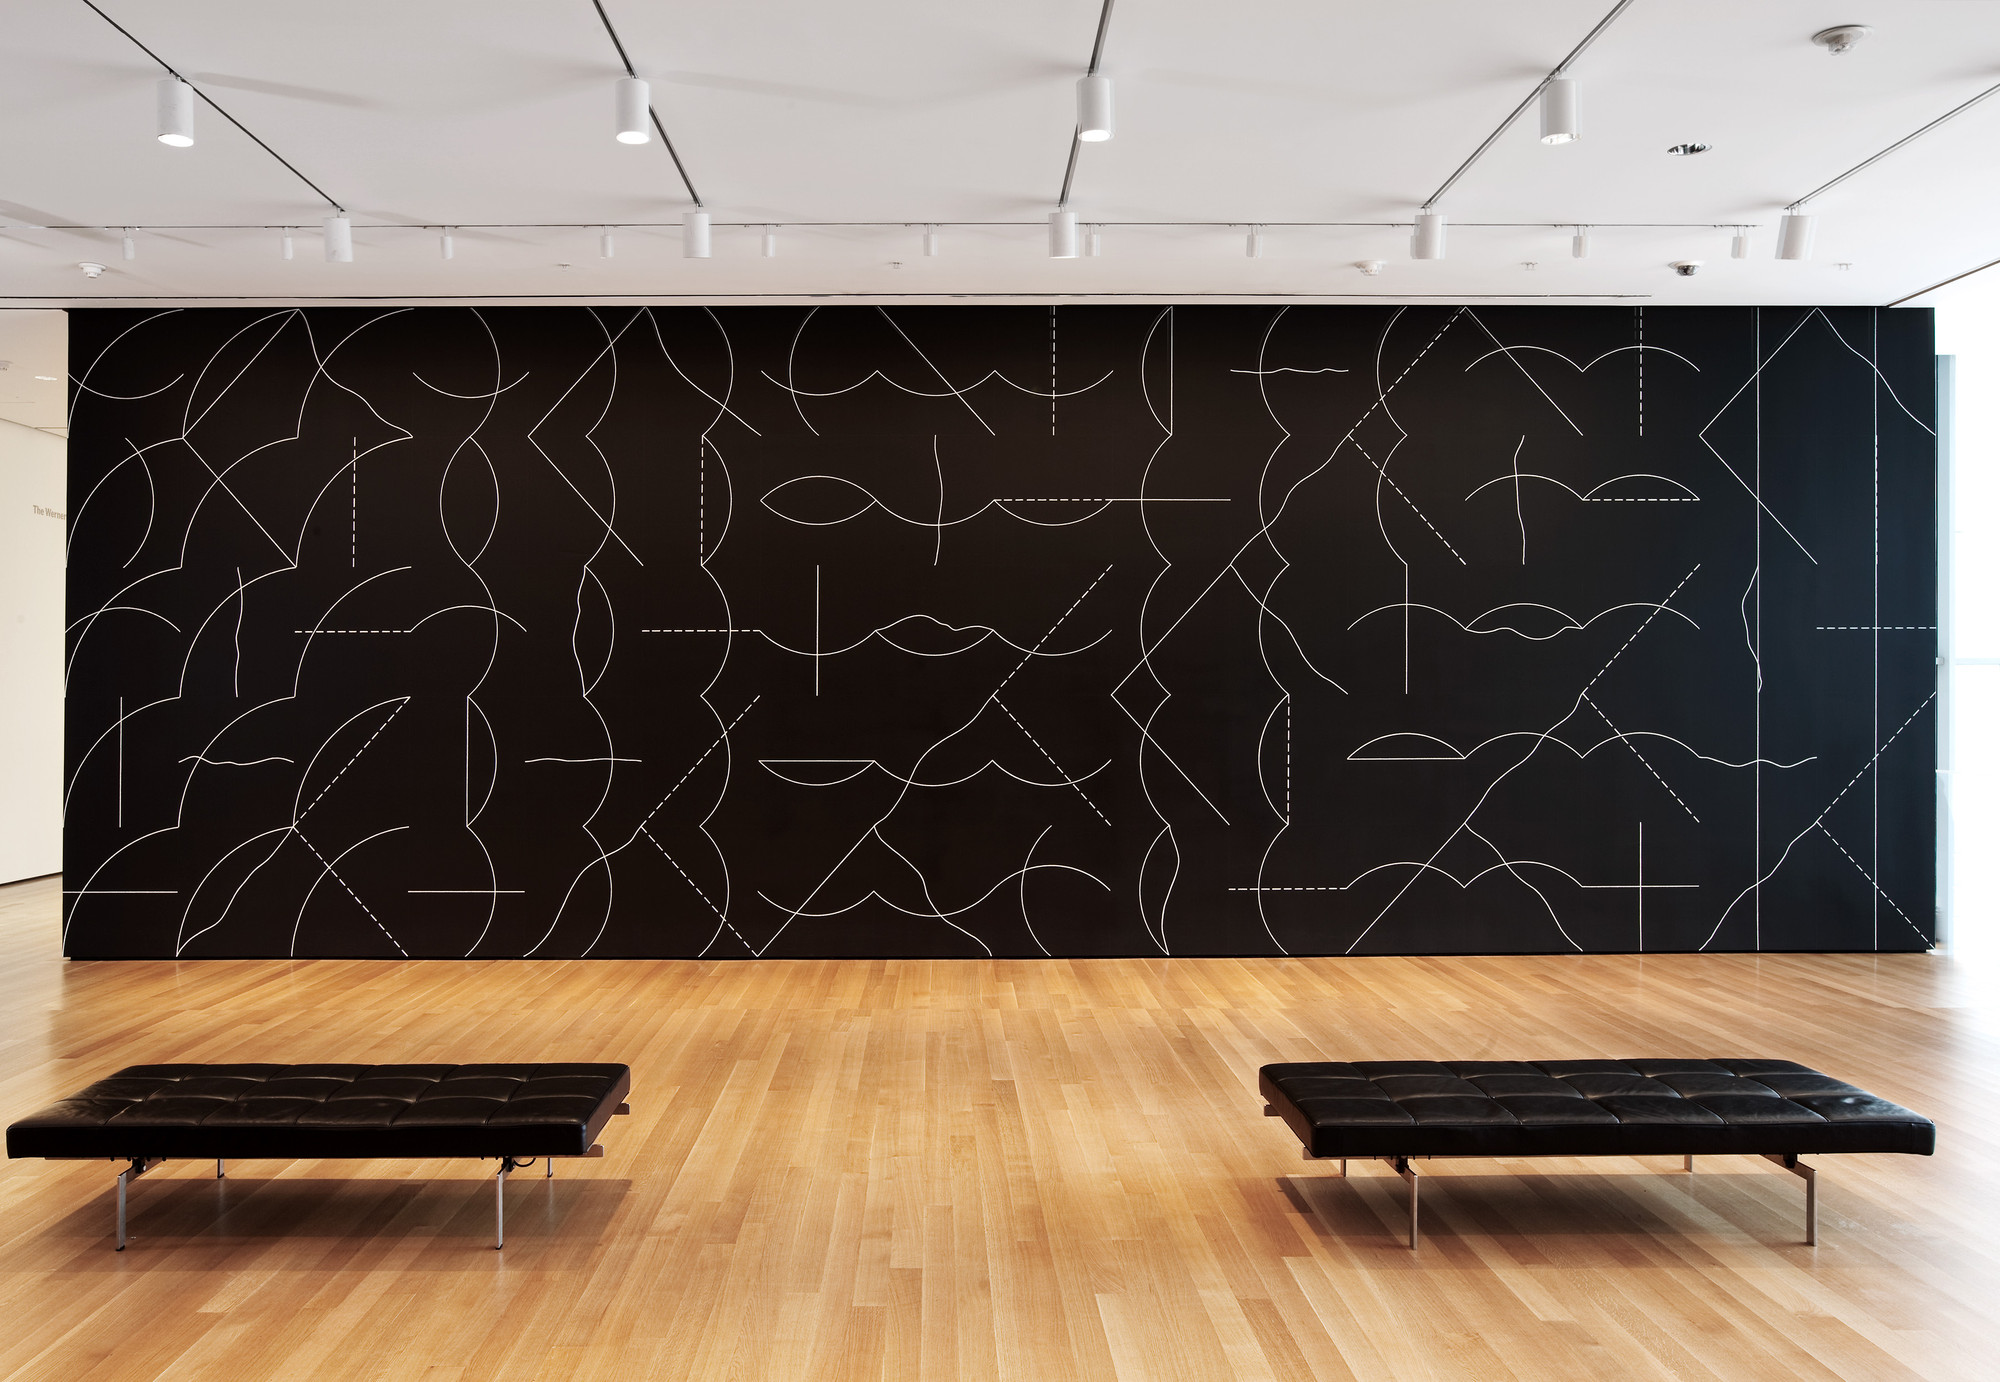 Installation view of Sol LeWitt's Wall Drawing #260 at The Museum of Modern Art, 2008. Sol LeWitt. Wall Drawing #260. 1975. Chalk on painted wall, dimensions variable. Gift of an anonymous donor. © 2008 Sol LeWitt/Artists Rights Society (ARS), New York. Photo © Jason Mandella